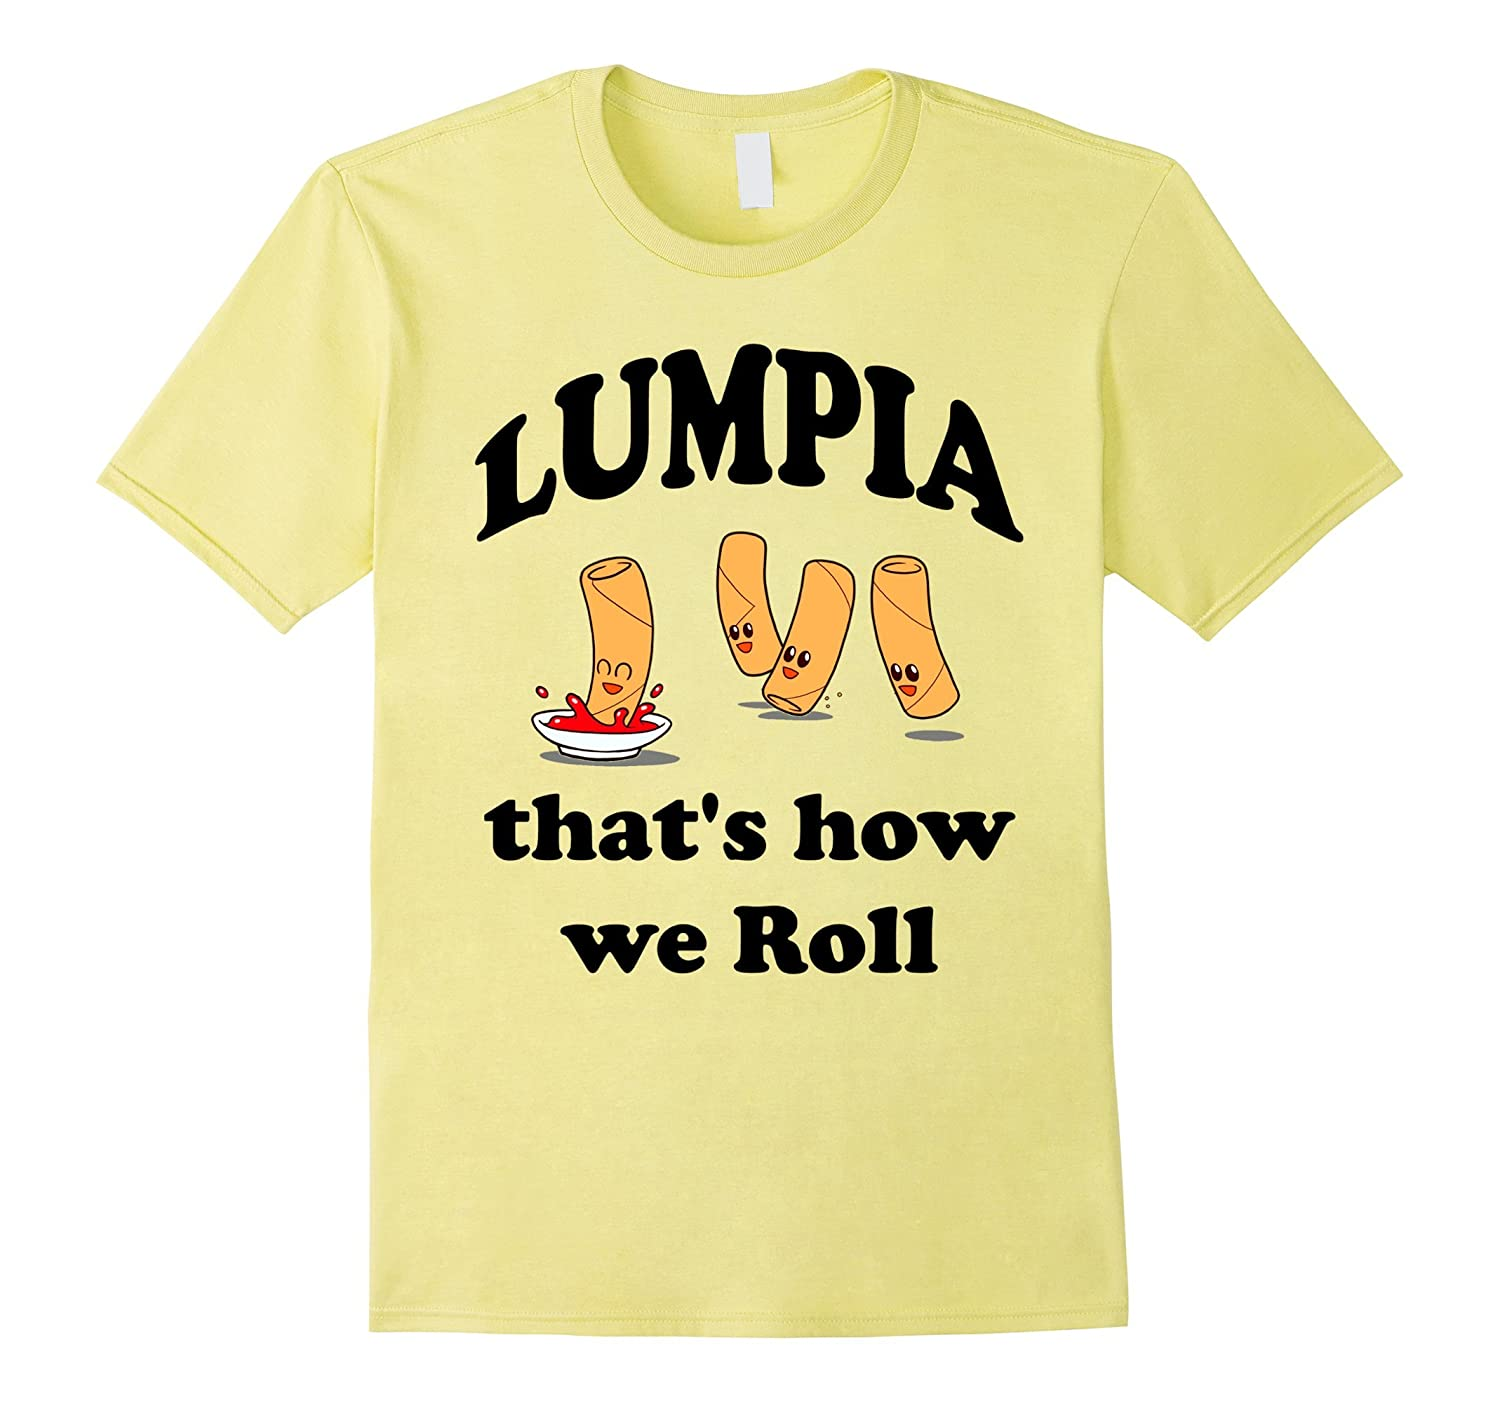 3598a5c3 Lumpia T Shirt That's how we Roll Funny Filipino Pinoy Humor-BN ...